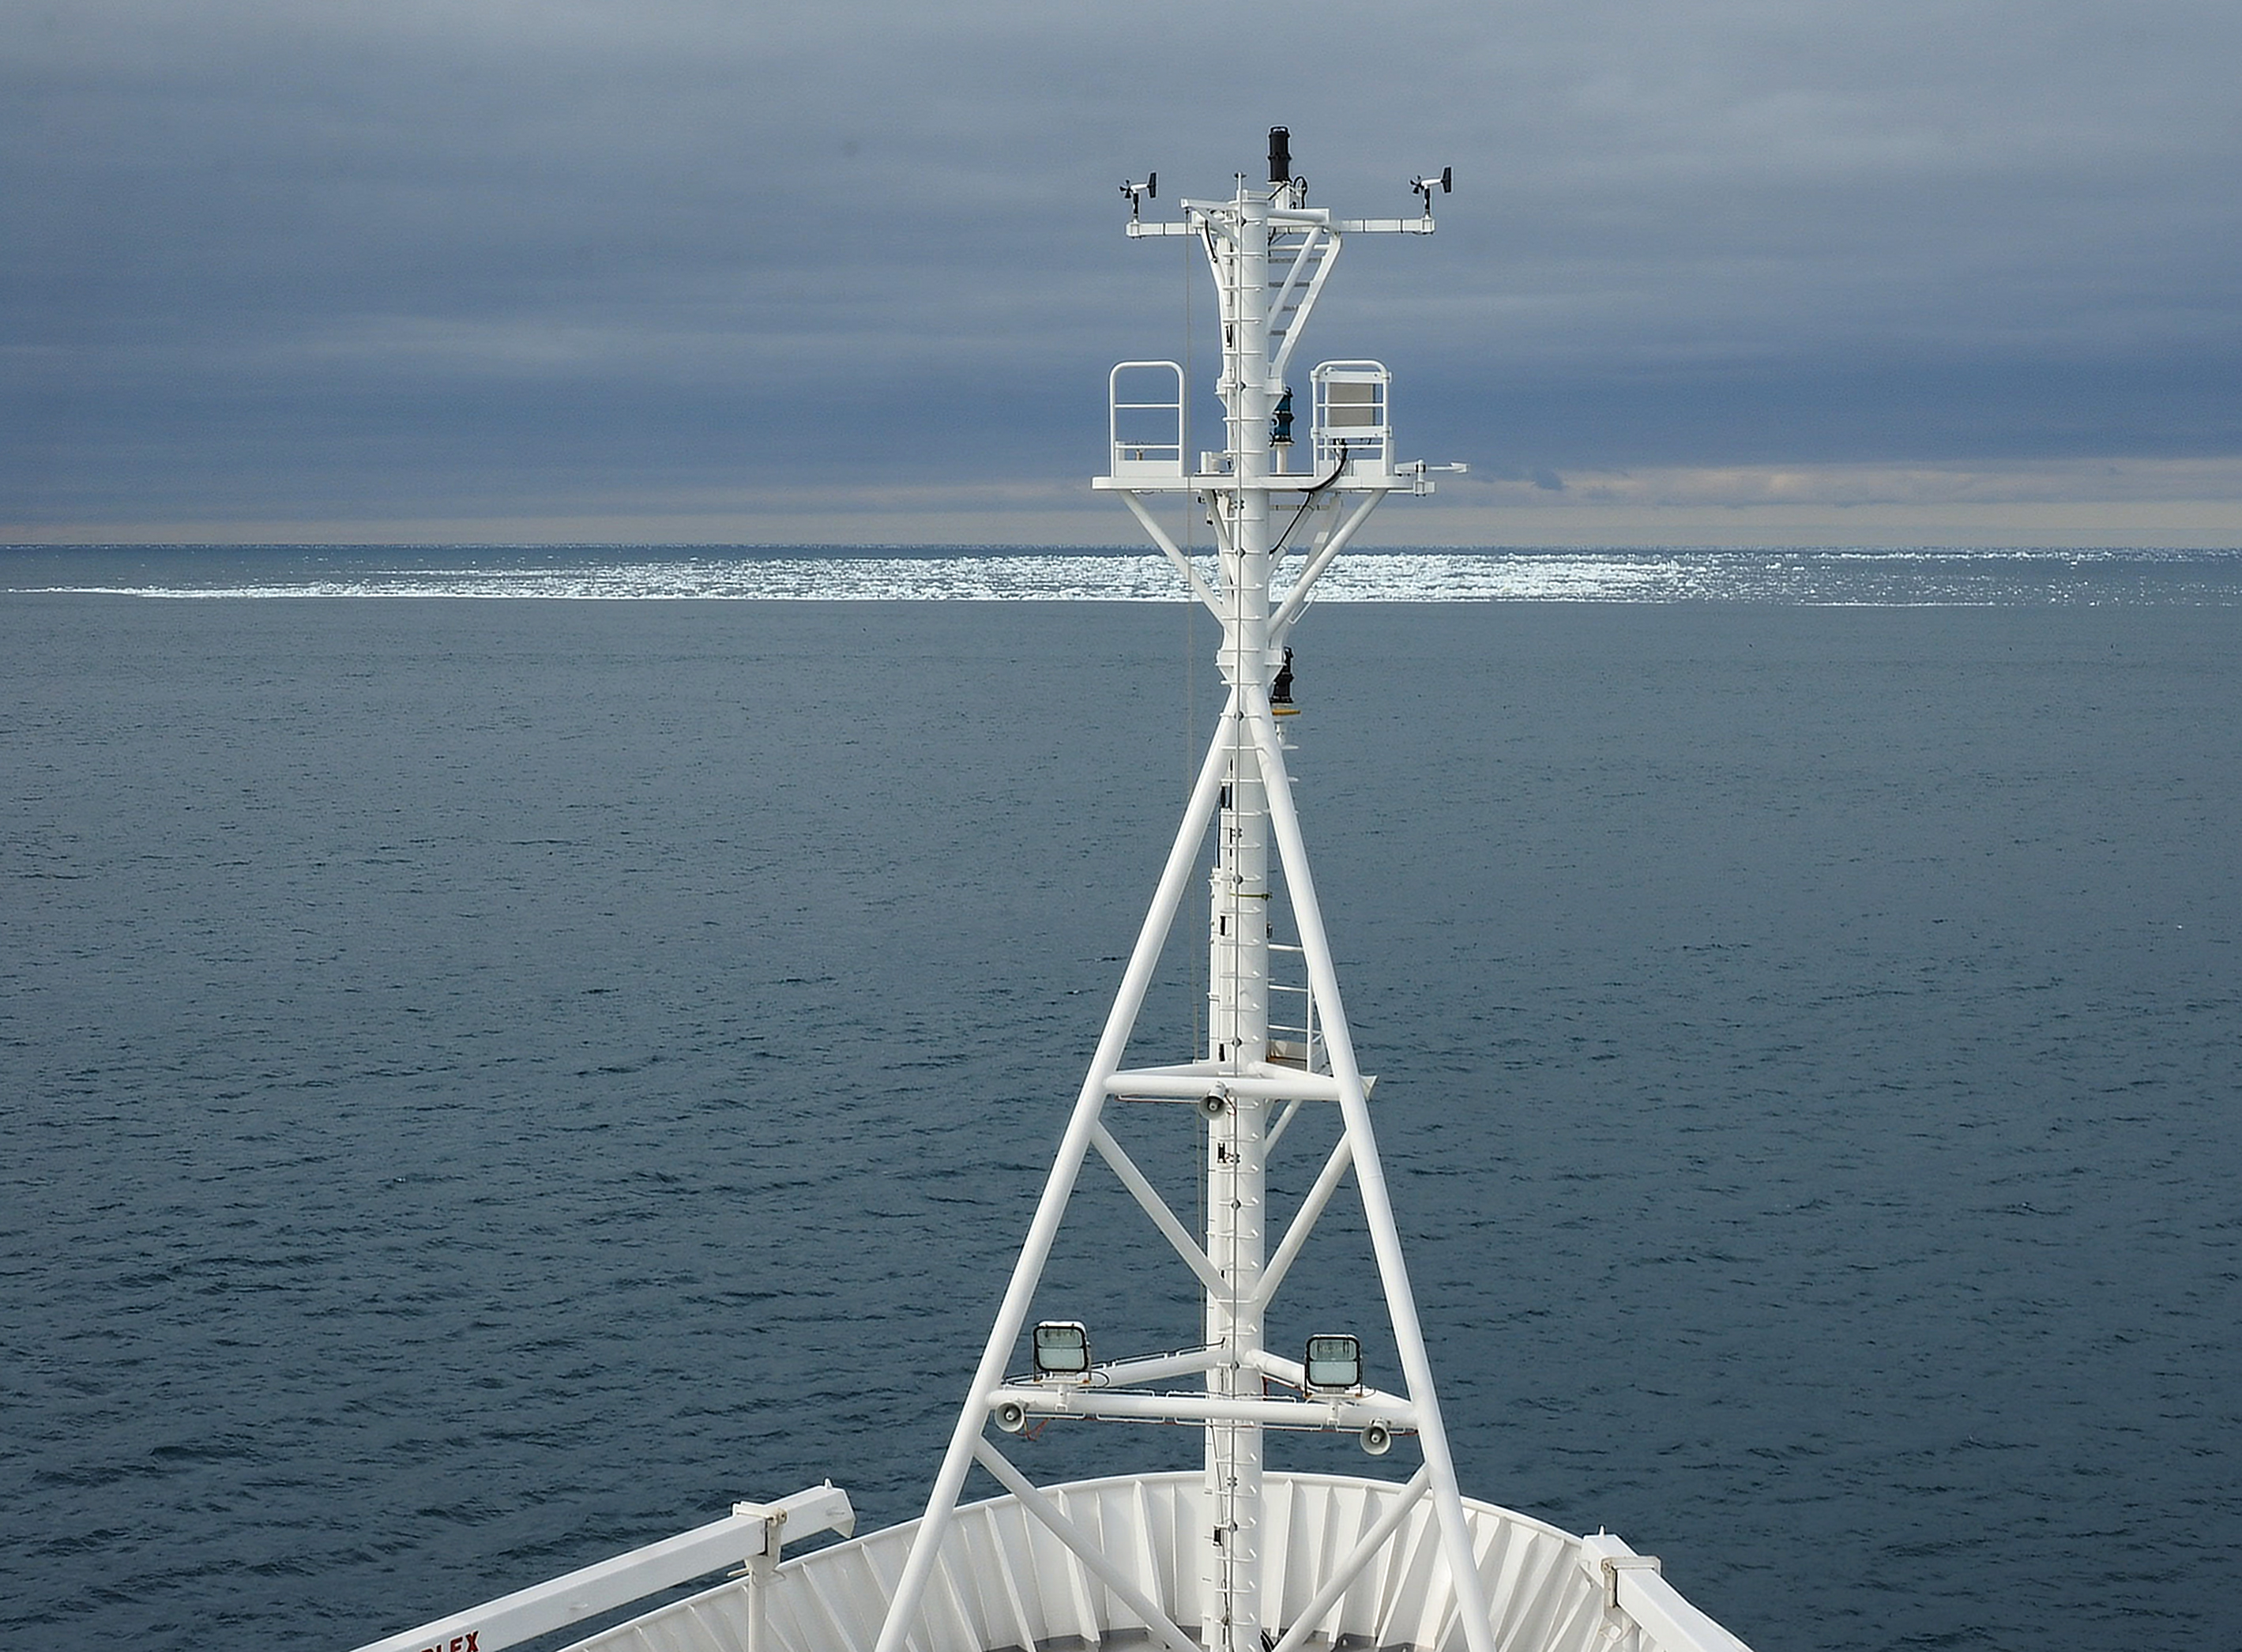 Looking across the front of RV Investigator with the Antarctic ice edge in the distance.